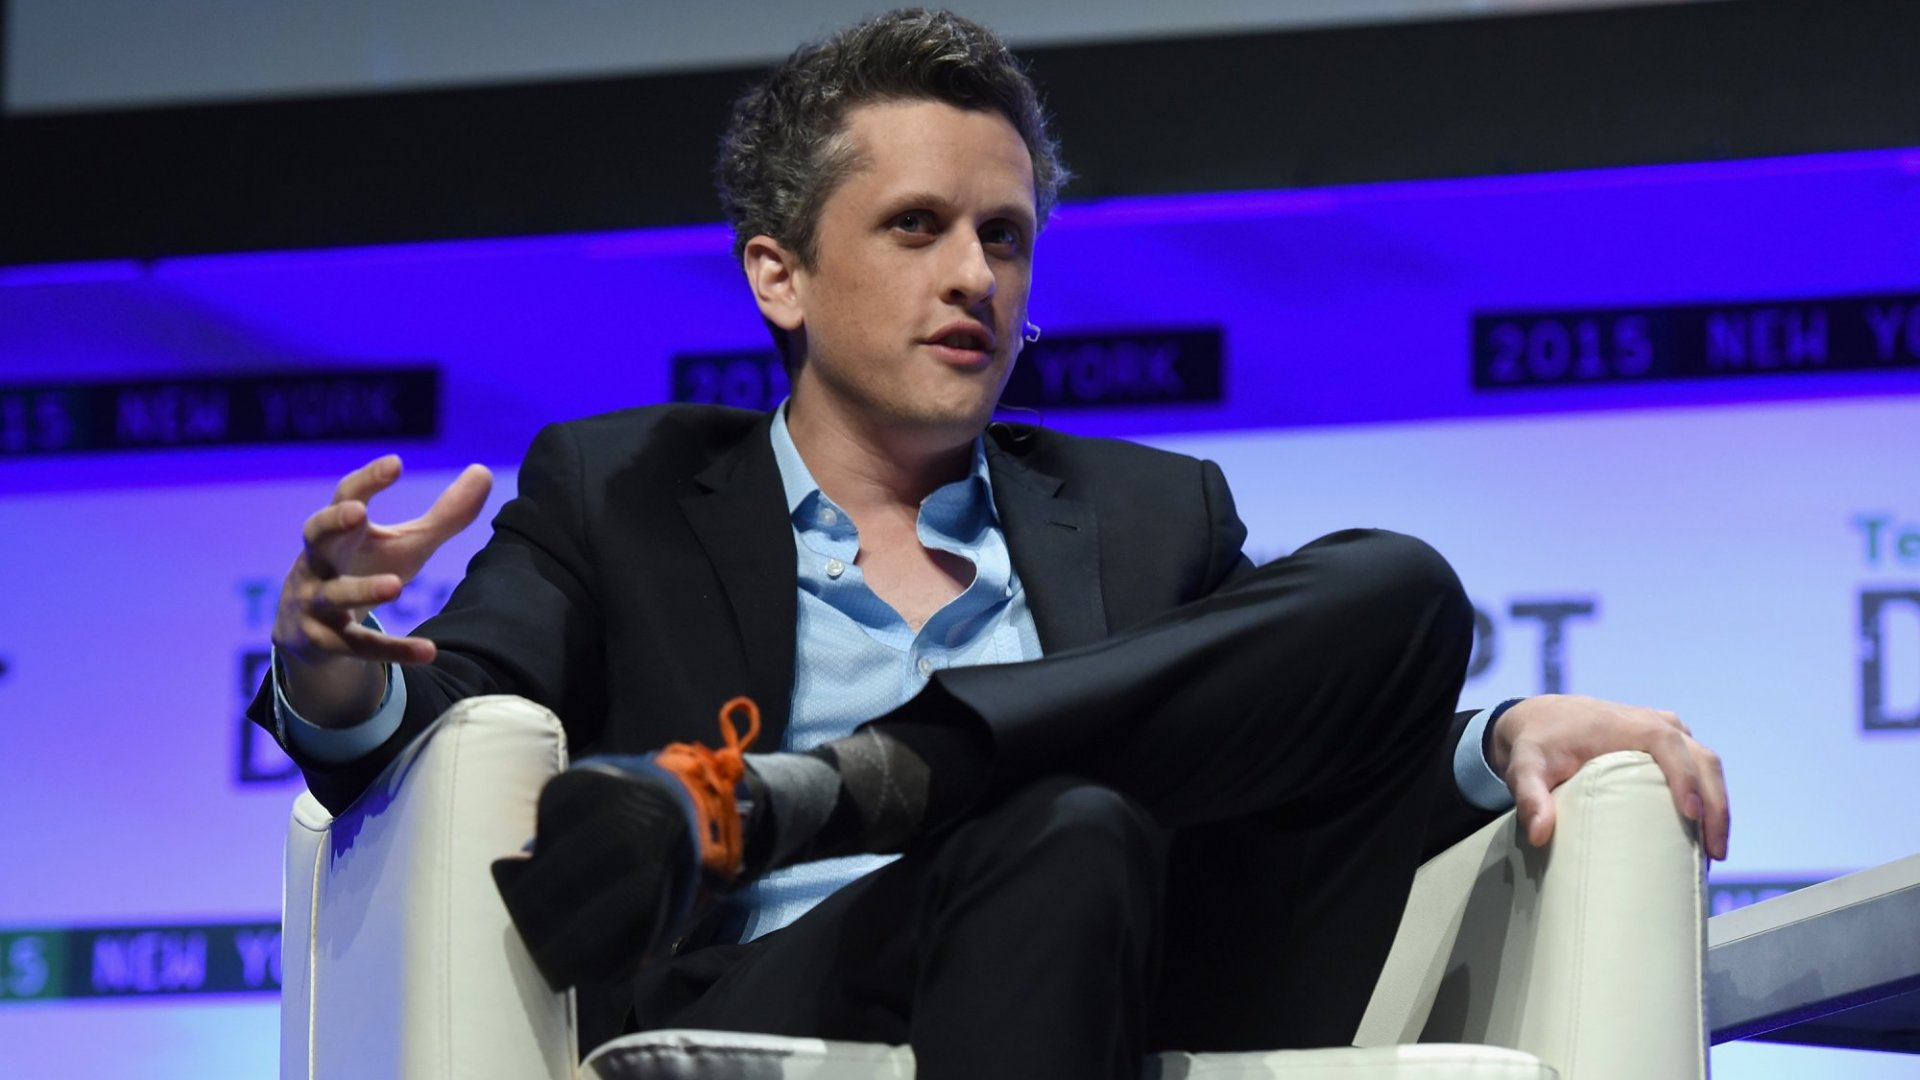 Co-founder and CEO of Box, Aaron Levie. (Photo by Noam Galai/Getty Images for TechCrunch)